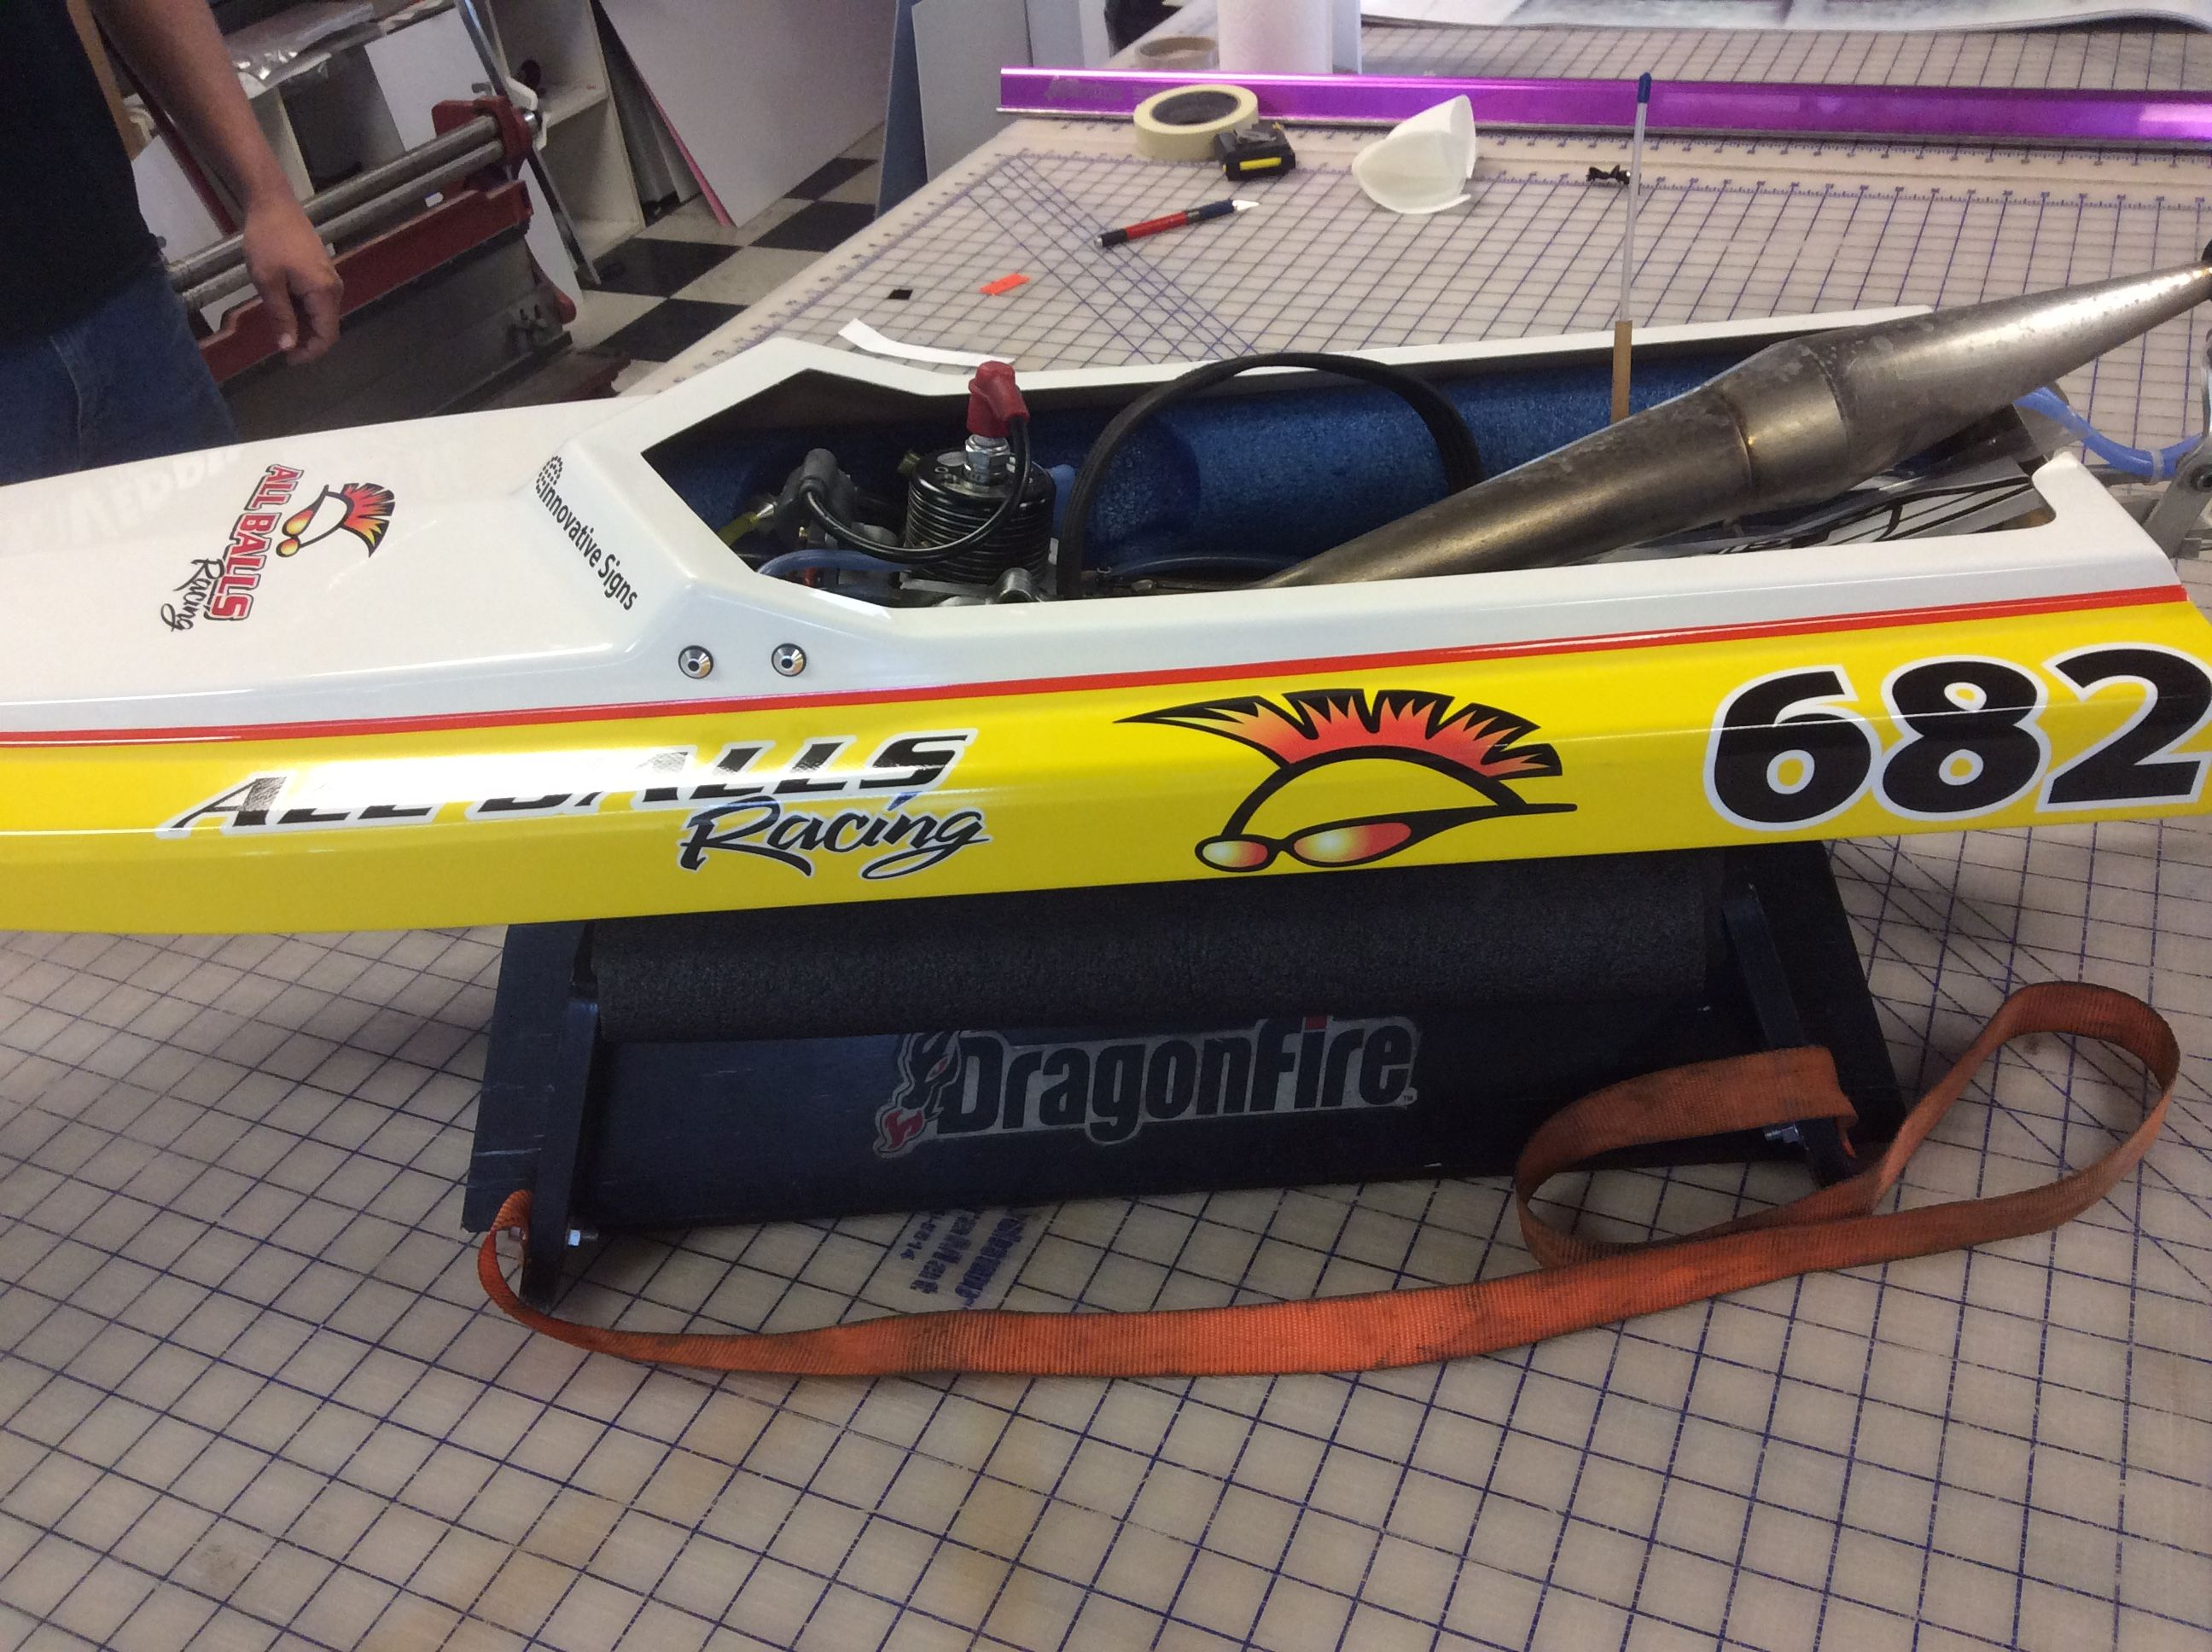 Vinyl On A RC Race Boat Vinyl Rcboats Decals Lettering - Vinyl letter stickers for boats